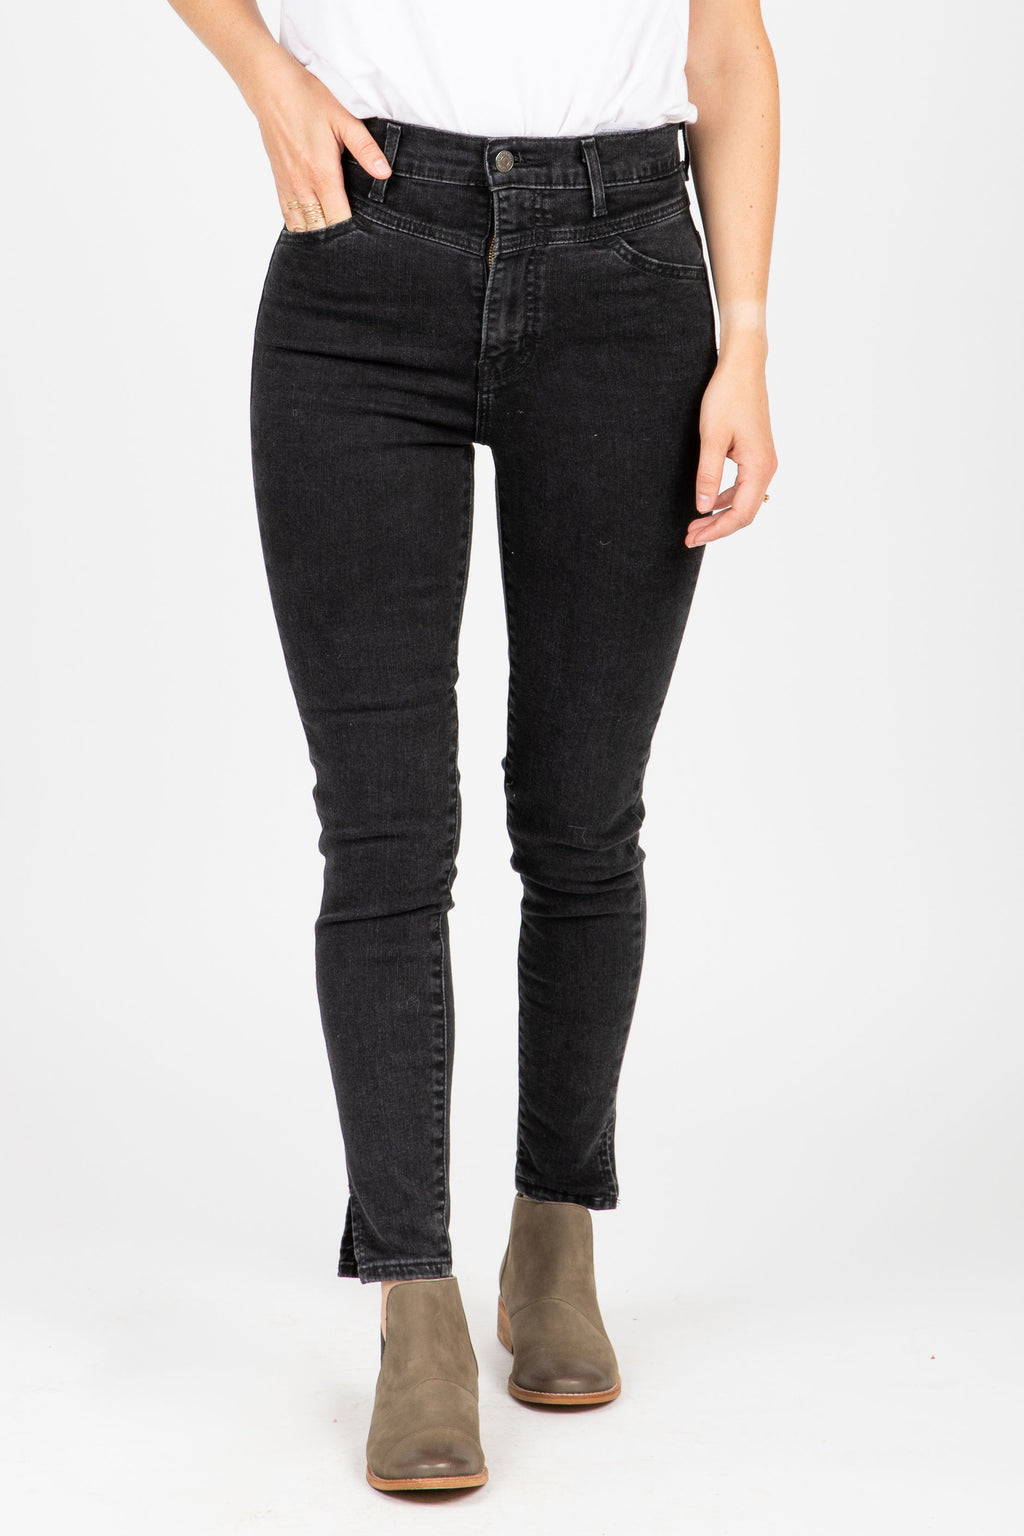 Levi's: Mile High Super Skinny Bootie Jeans in Aces High, studio shoot; front view